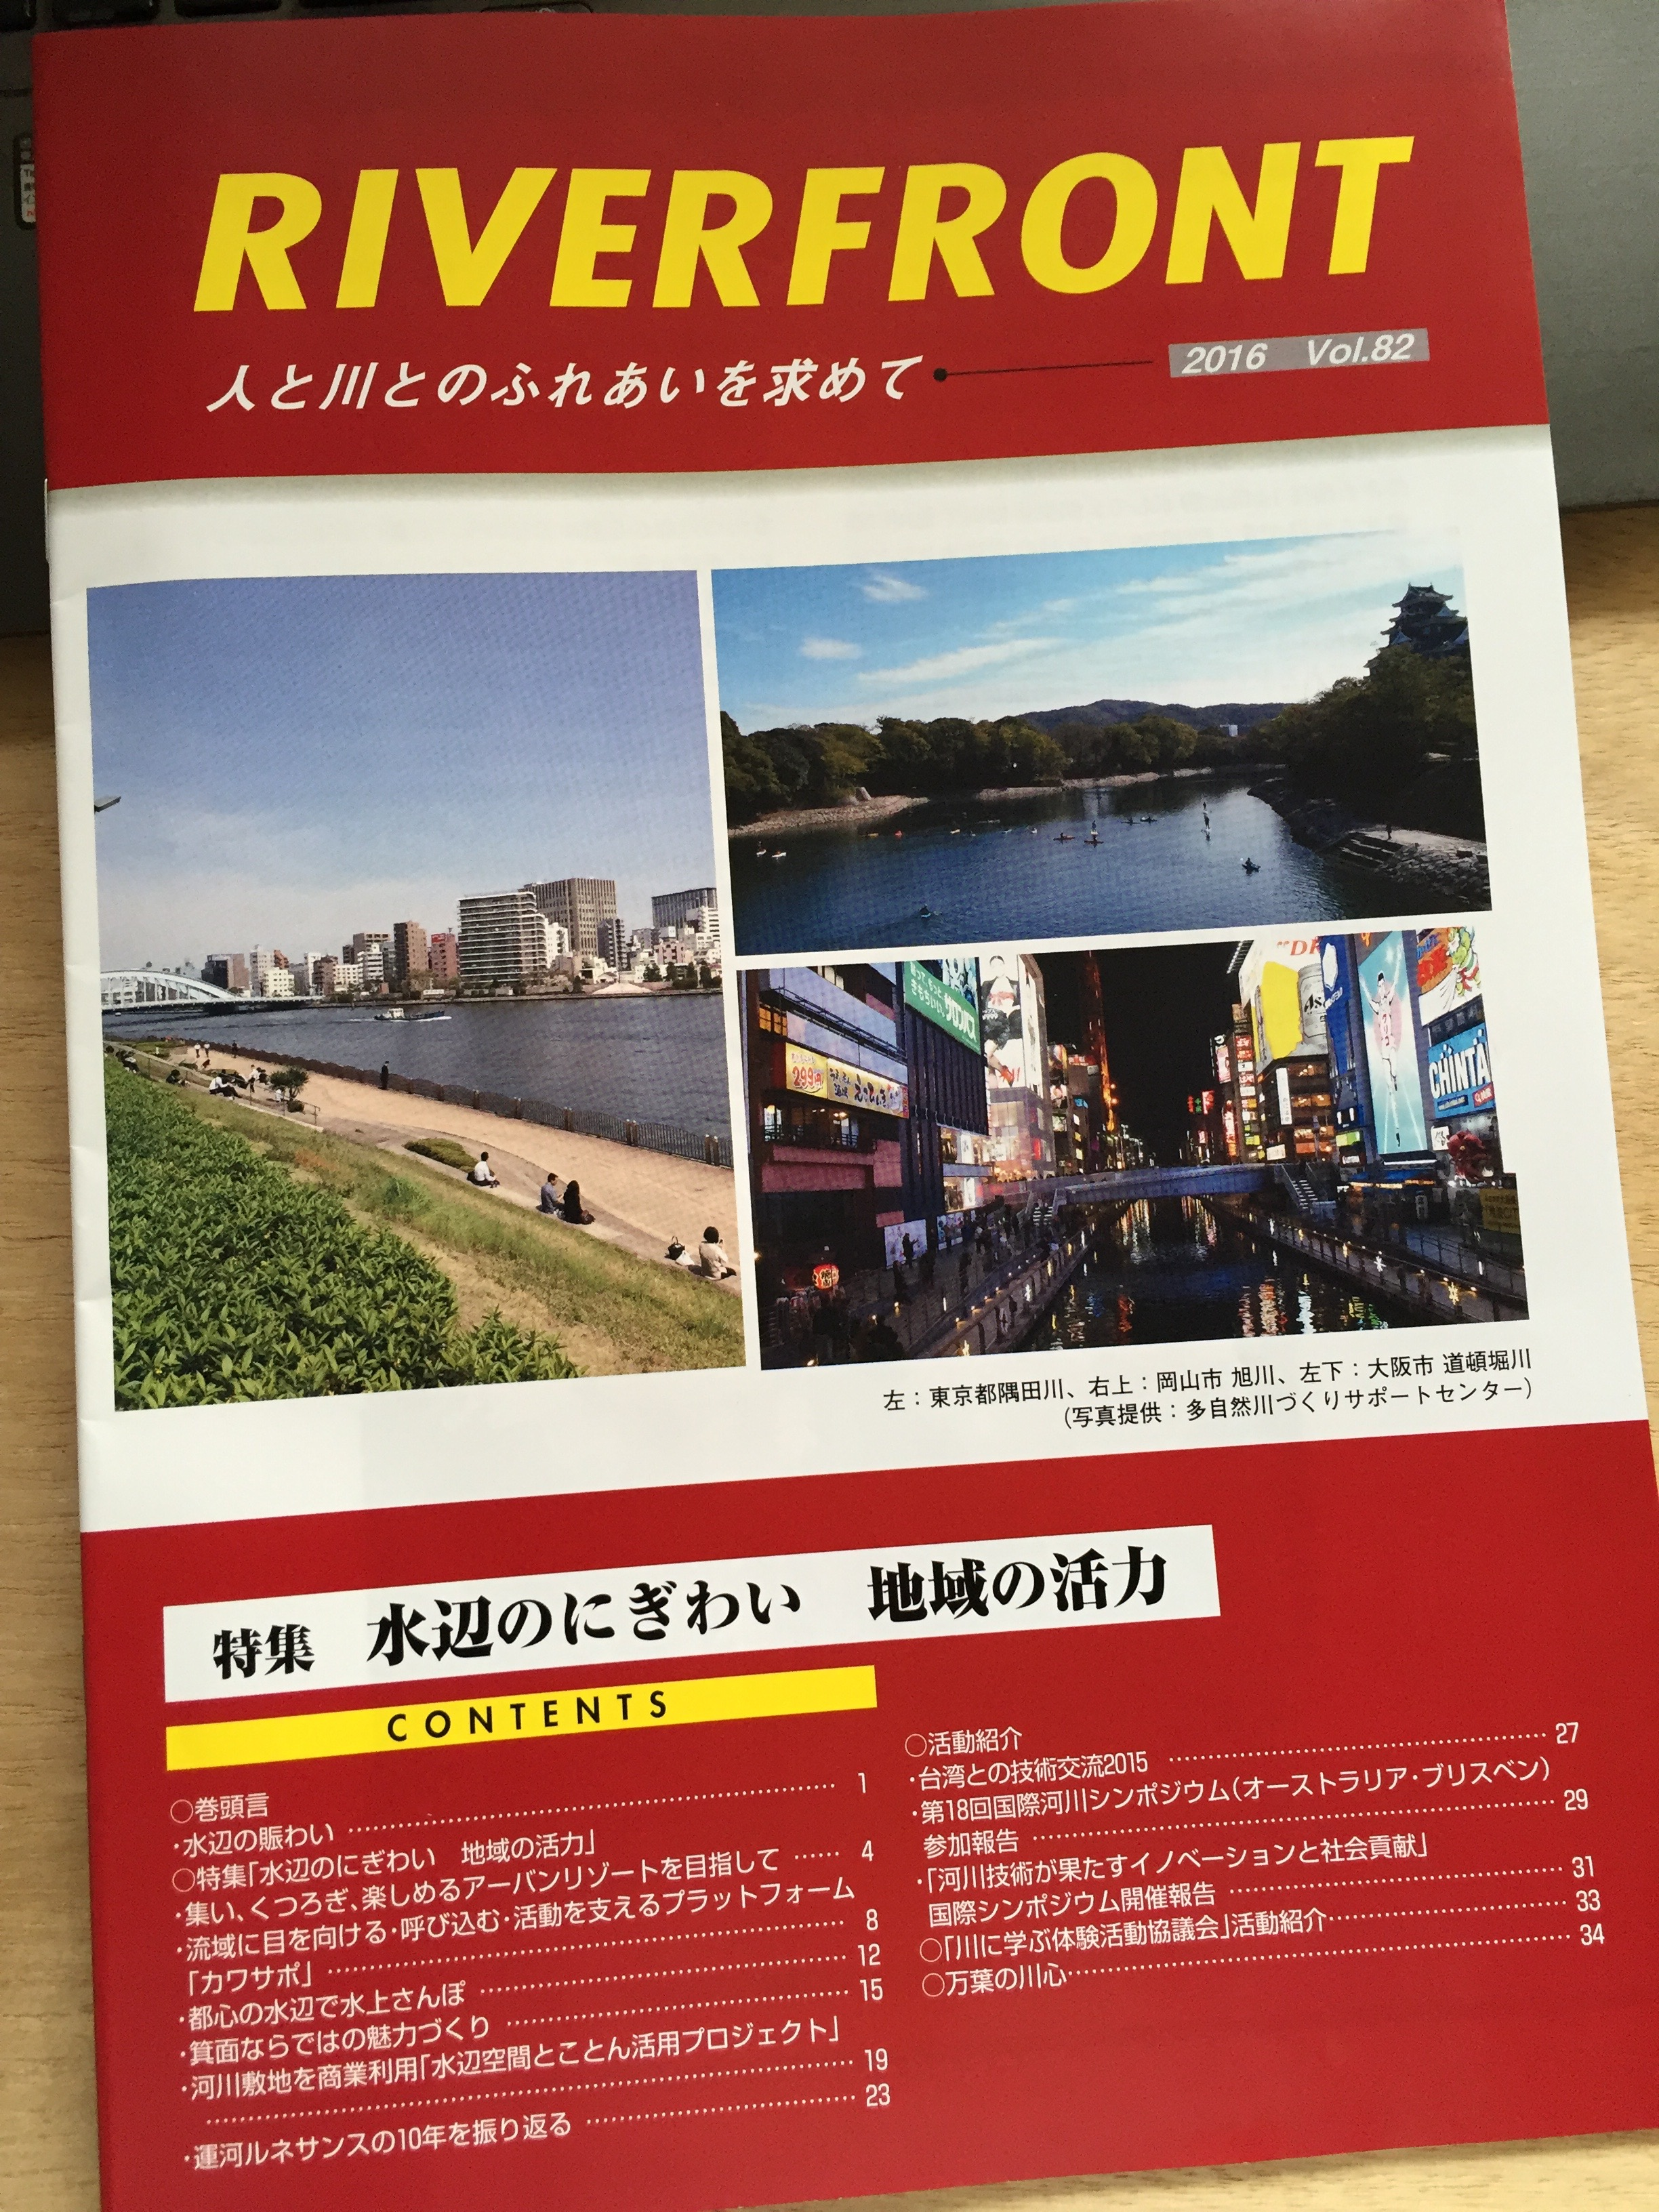 「RIVER FRONT Vol.82」でカワサポの記事が掲載されました